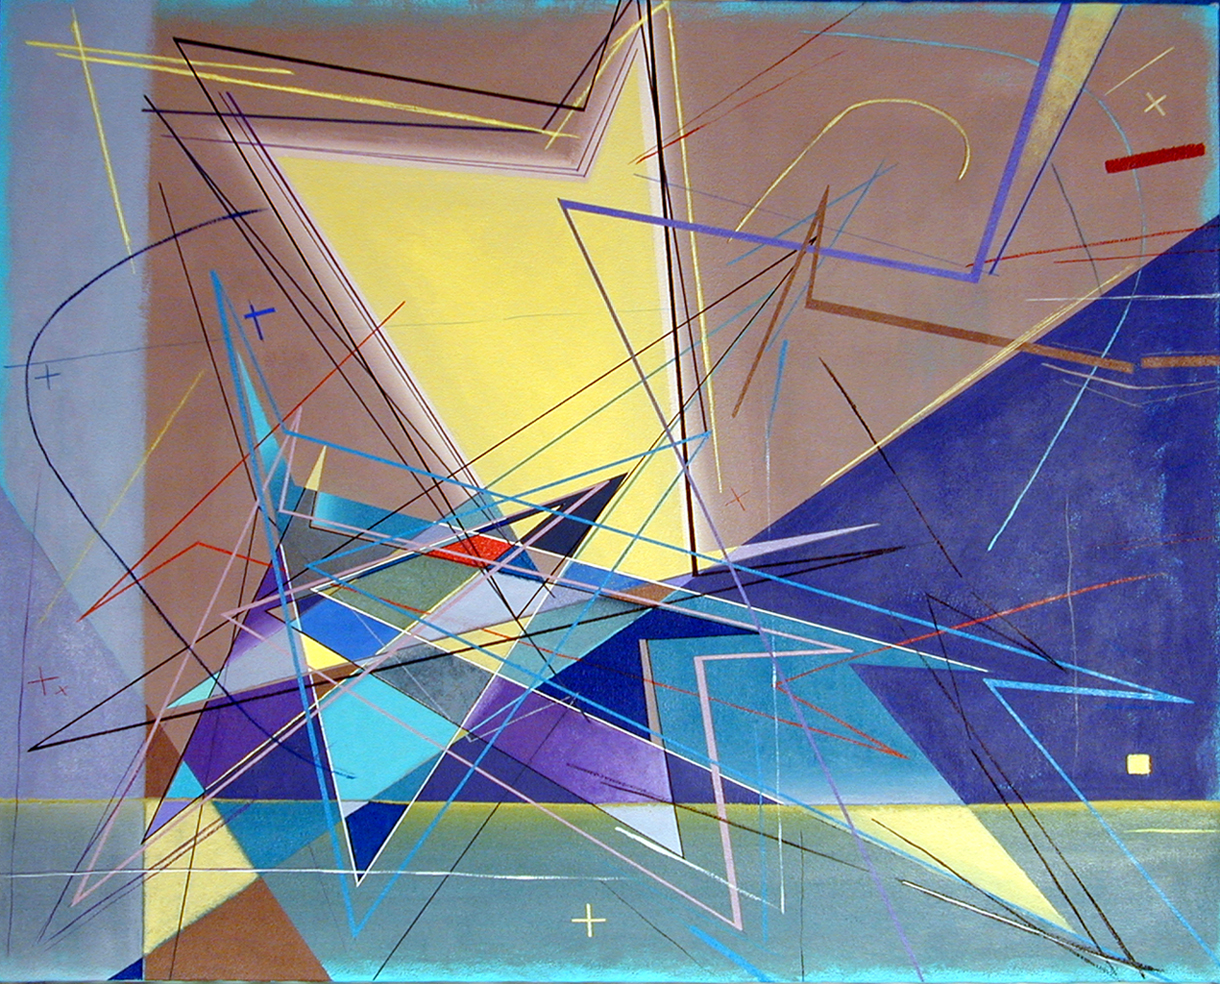 Riccardo Liotta - Honorable MentionProfessionally trained and practicing as an architect, I am inspired by physics, mathematics and geometry to produce abstract art characterized by dynamic, angular geometries, contrasting shapes, overlapping polychromatic polygons, vibrant colors, sharp lines, and graphics elements, derived from the application of mathematical formulas and geometric principles, it expresses concepts like speed, movement, energy, reflecting the changing, unstable characteristics of nature, as well as the fragmentation, uncertainty and undeterminability of life.instagram.com/riccardoliotta.art/